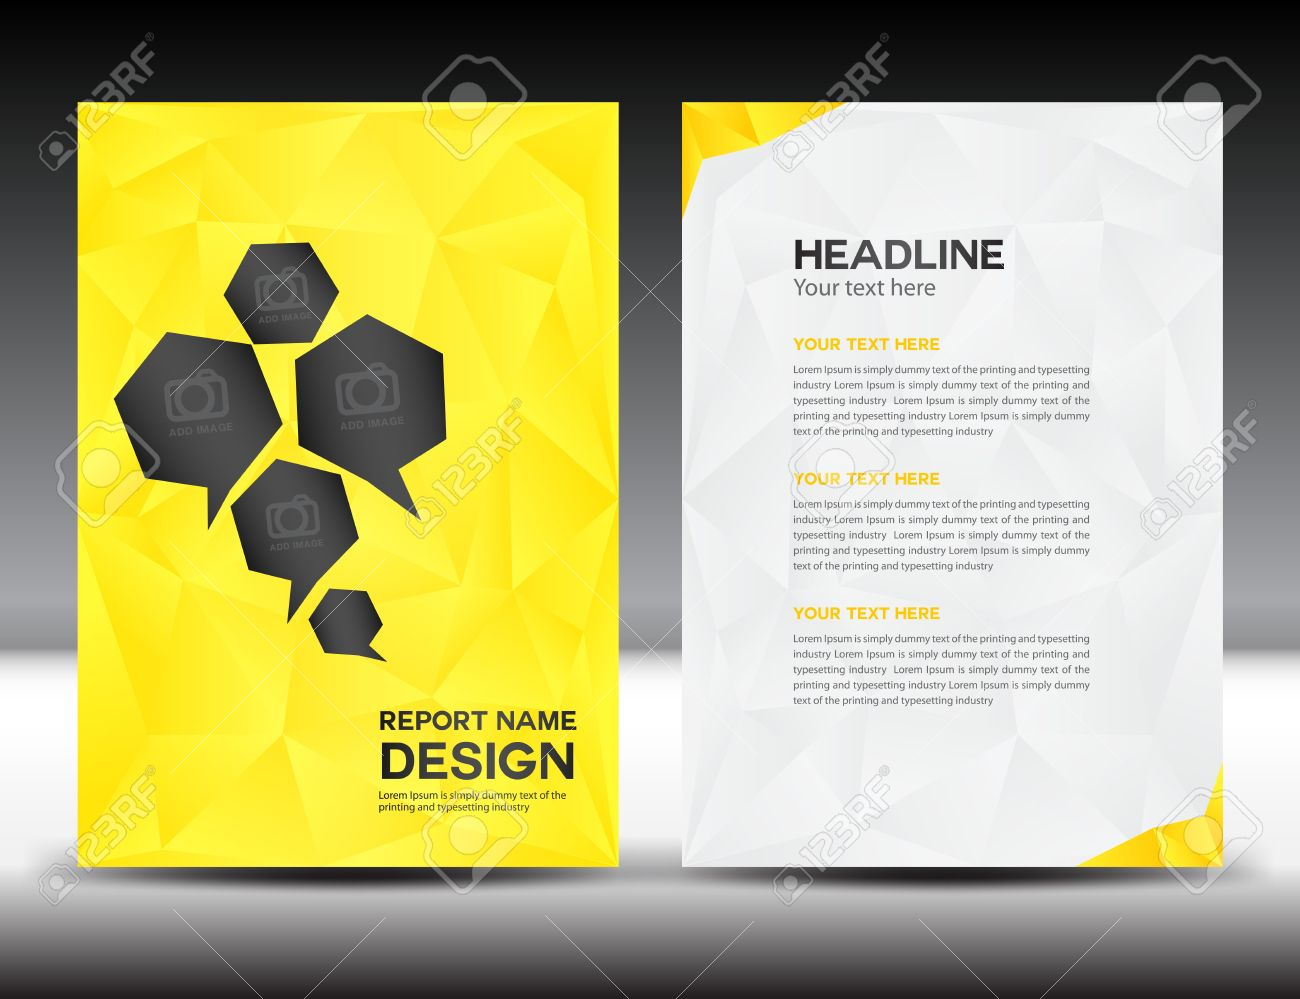 yellow cover annual report template polygon background brochure yellow cover annual report template polygon background brochure design cover template flyer